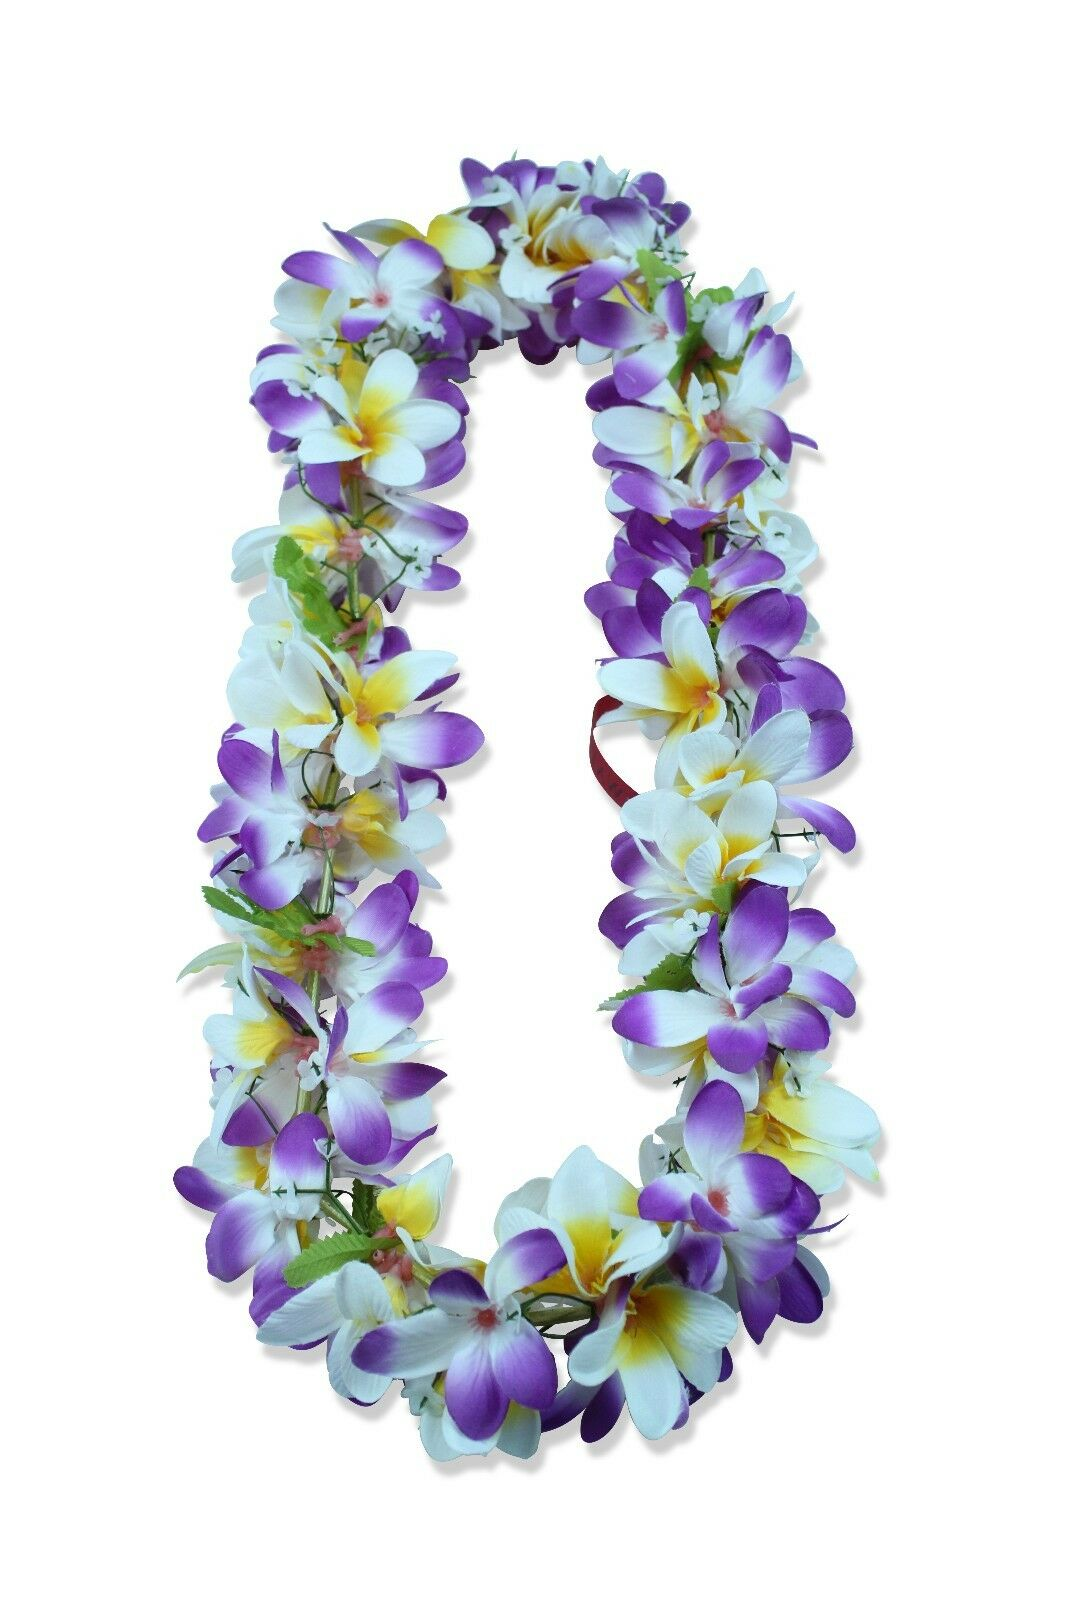 Hawaiian lei party luau floral plumeria flower dance hawaii purple hawaiian lei party luau floral plumeria flower dance hawaii purple yellow white 1 of 4only 4 available izmirmasajfo